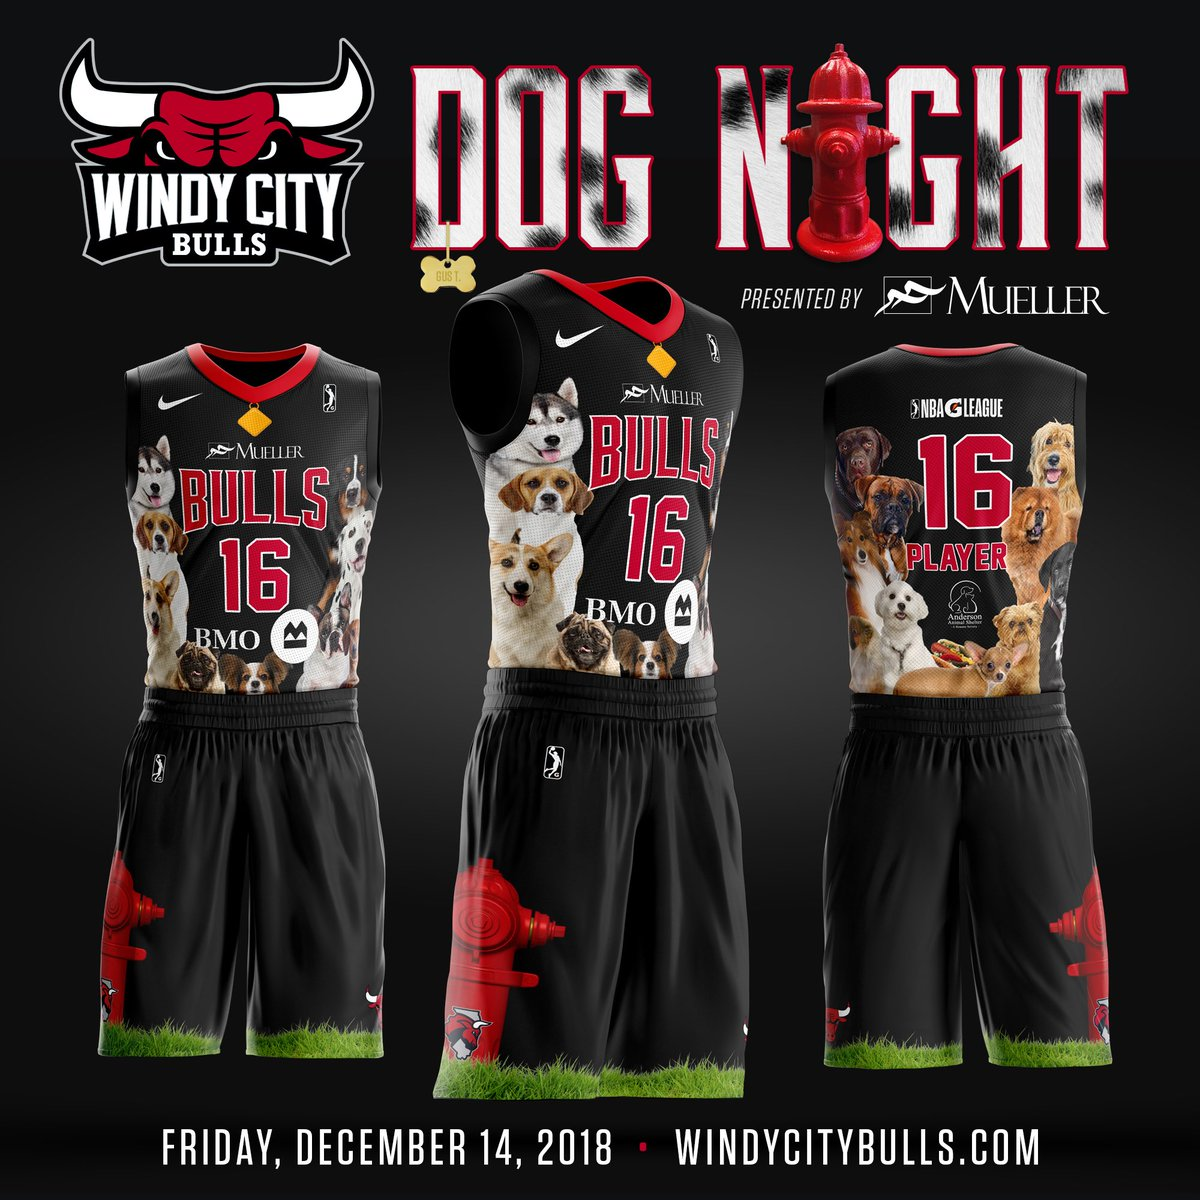 2e29608db55b Catch the Windy City Bulls in these paw-dropping uniforms. Jerseys will be  auctioned off benefiting @AndersonAnimal. Purchase your tickets and Pooch  Passes ...